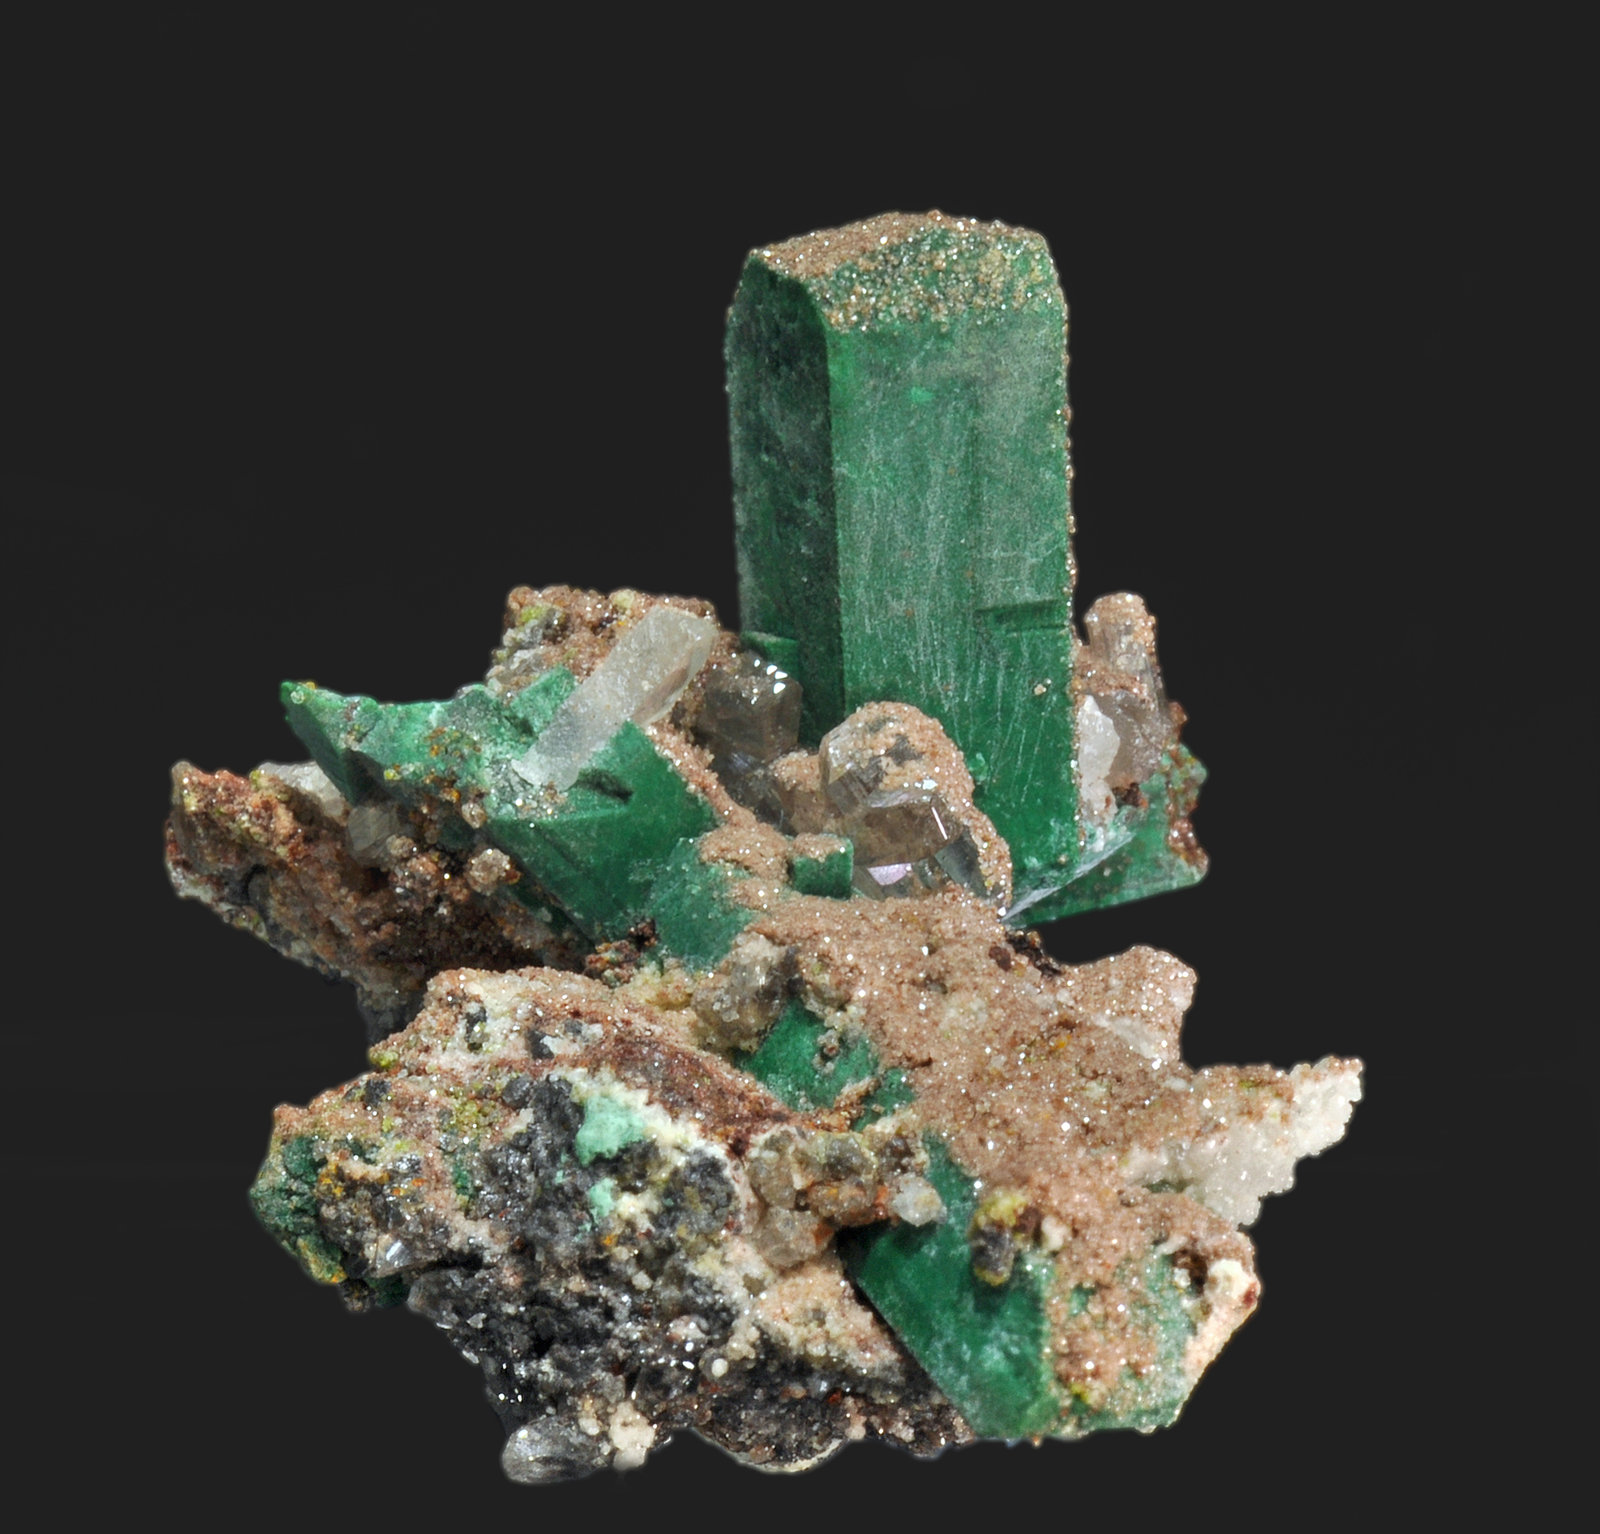 specimens/s_imagesR0/Malachite-TM14R0.jpg